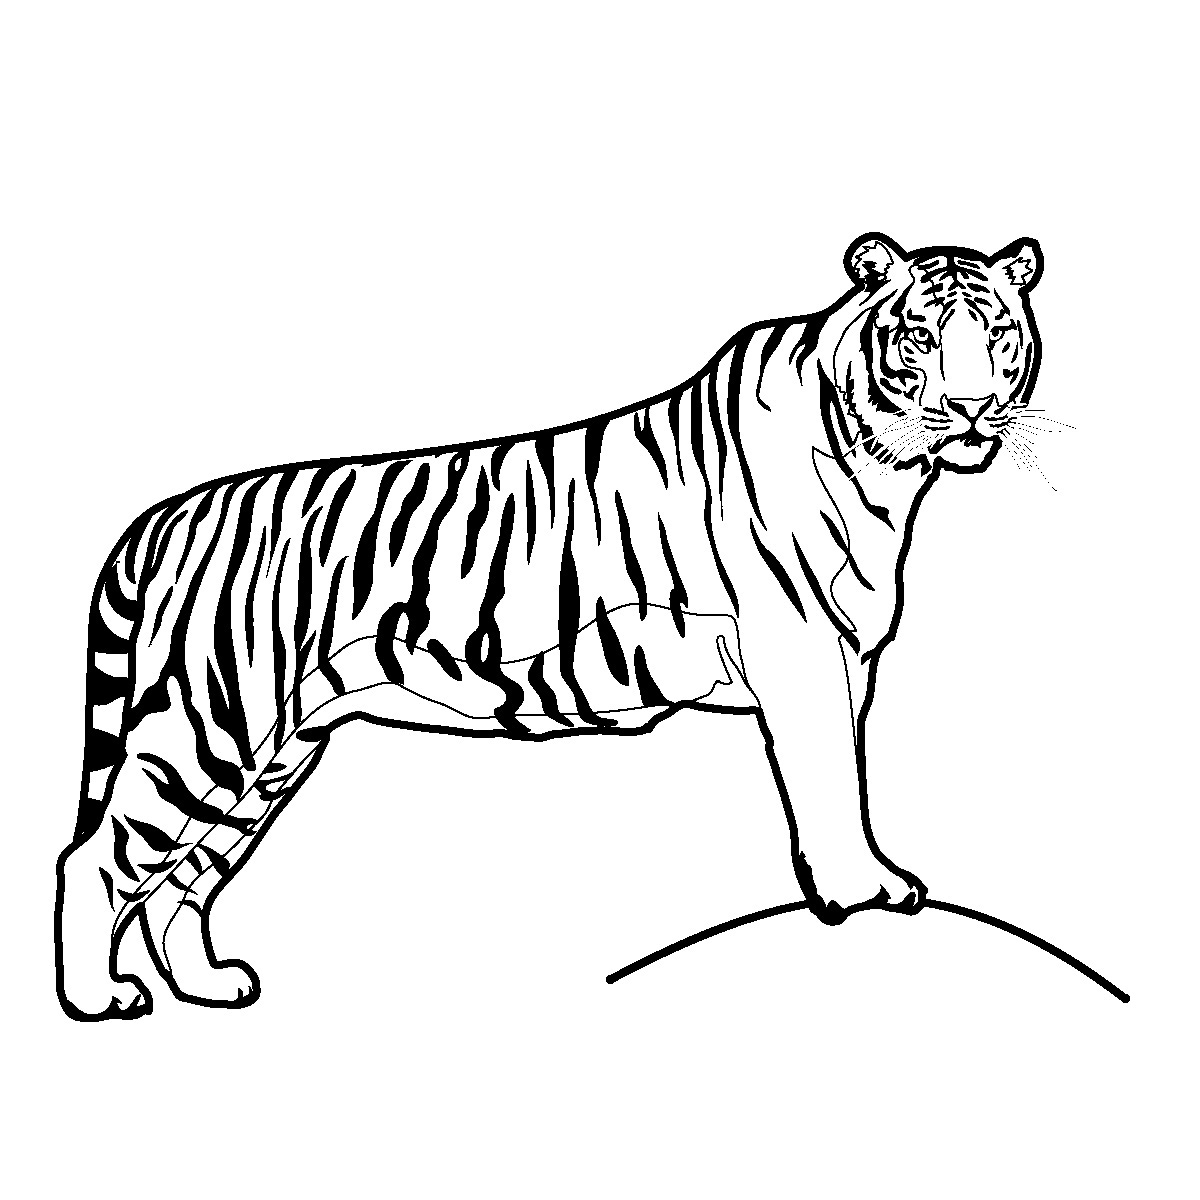 1200x1200 Drawing Of Tiger Pictures 7. How To Draw A Realistic Tiger